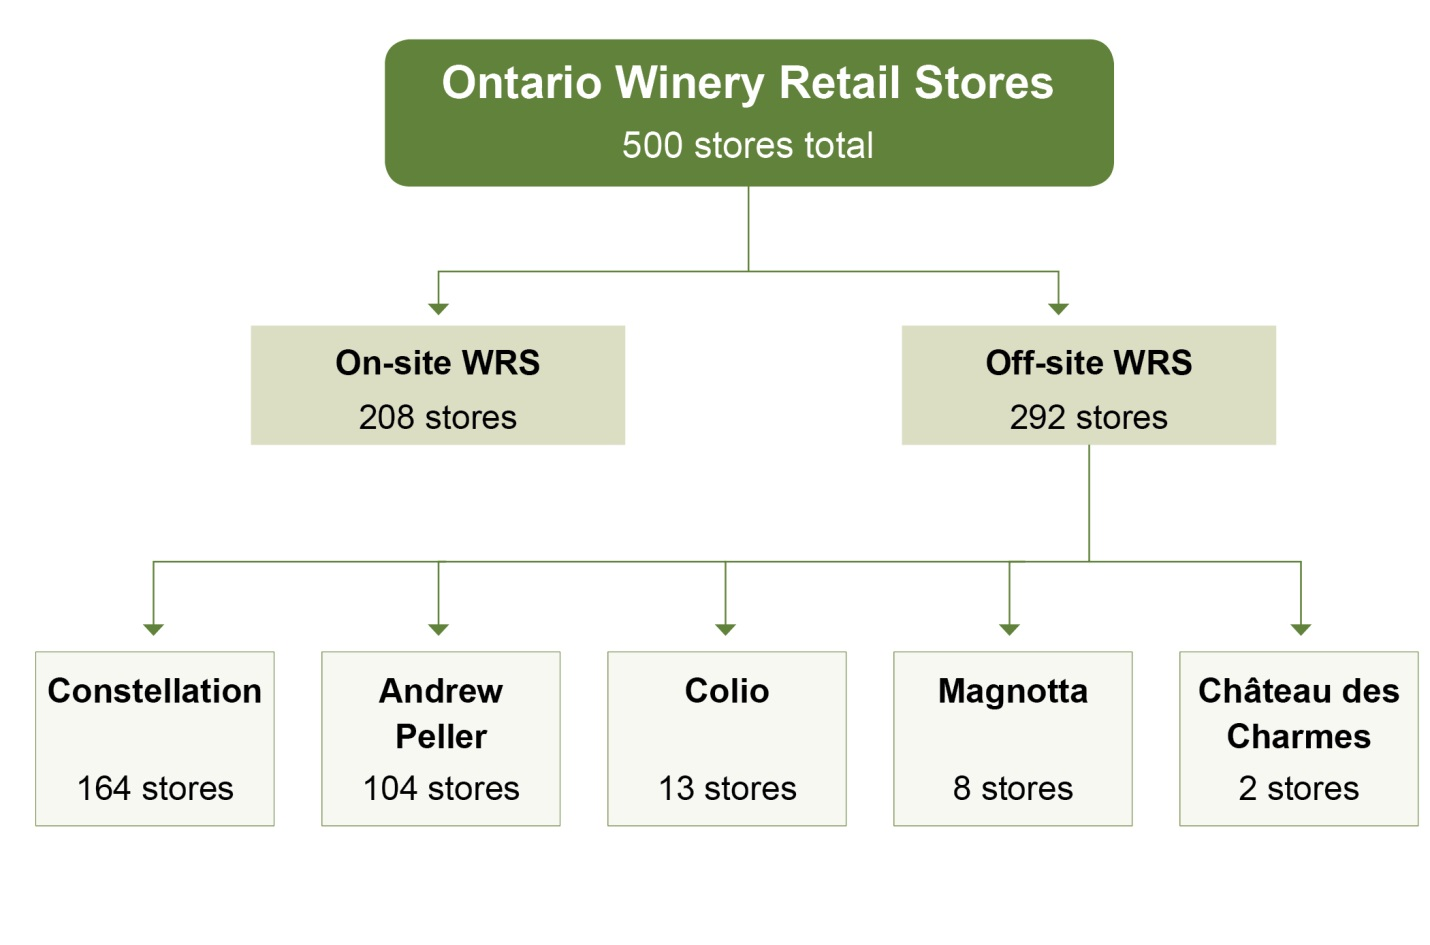 8460a360fe86 This image shows that there are 500 stores in the Winery Retail Stores (WRS)